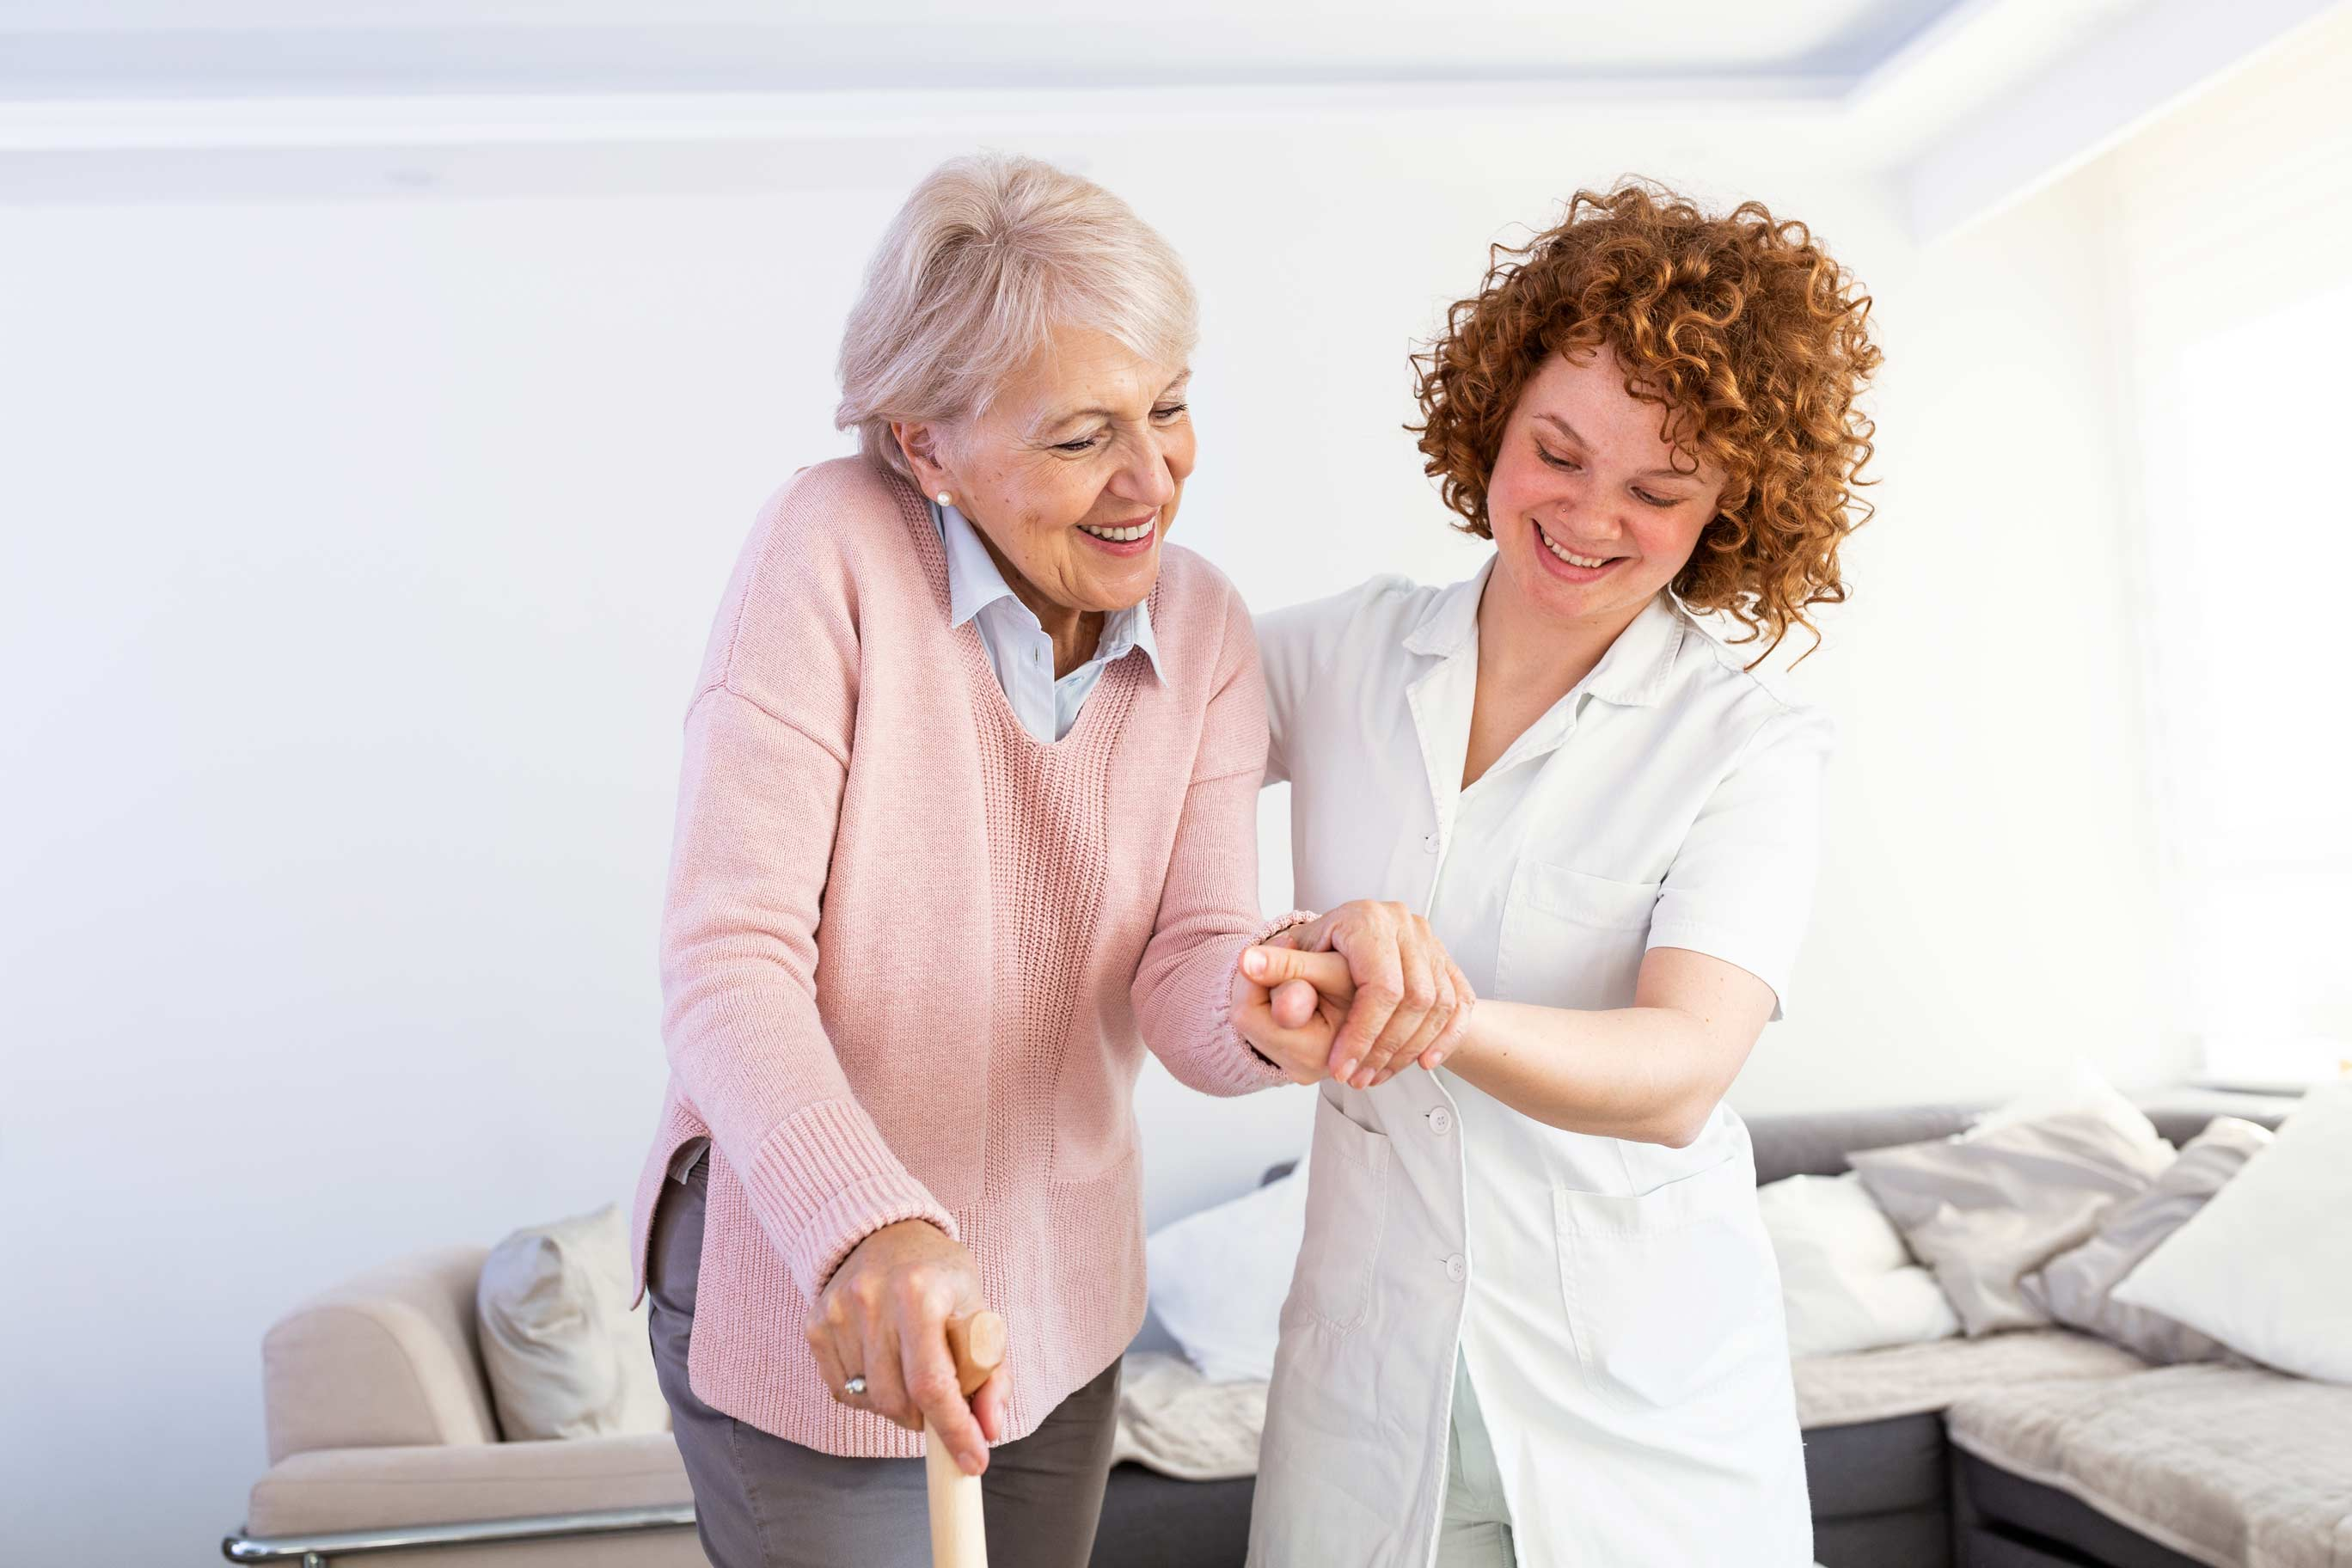 Carer helping support an elderly lady